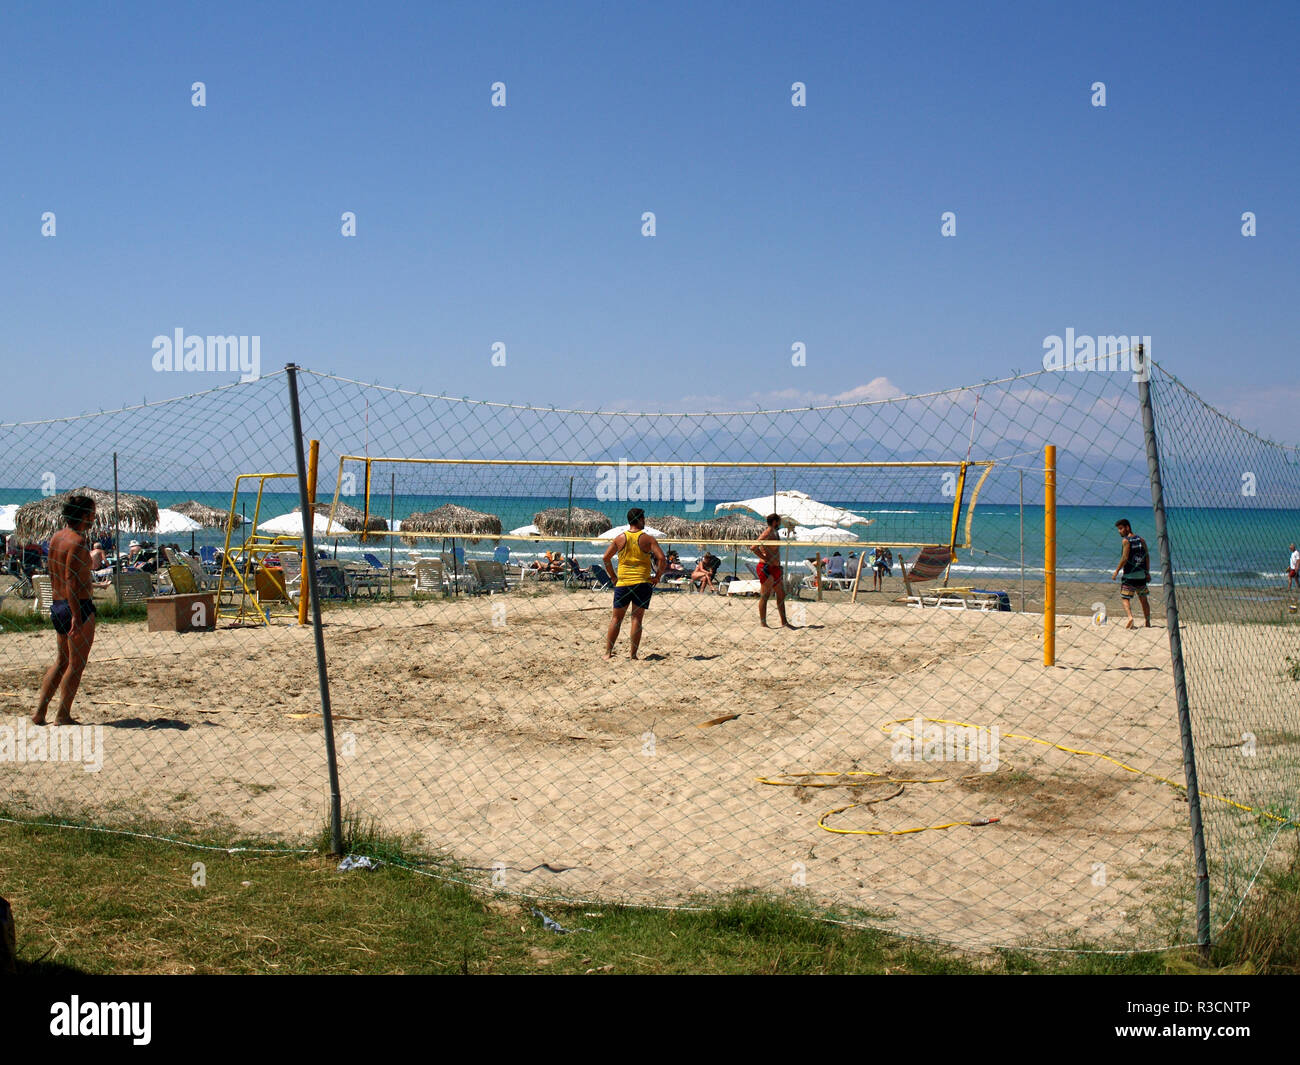 Tourists playing on volley ball court next to the beach road in Roda, Corfu, Greece - Stock Image